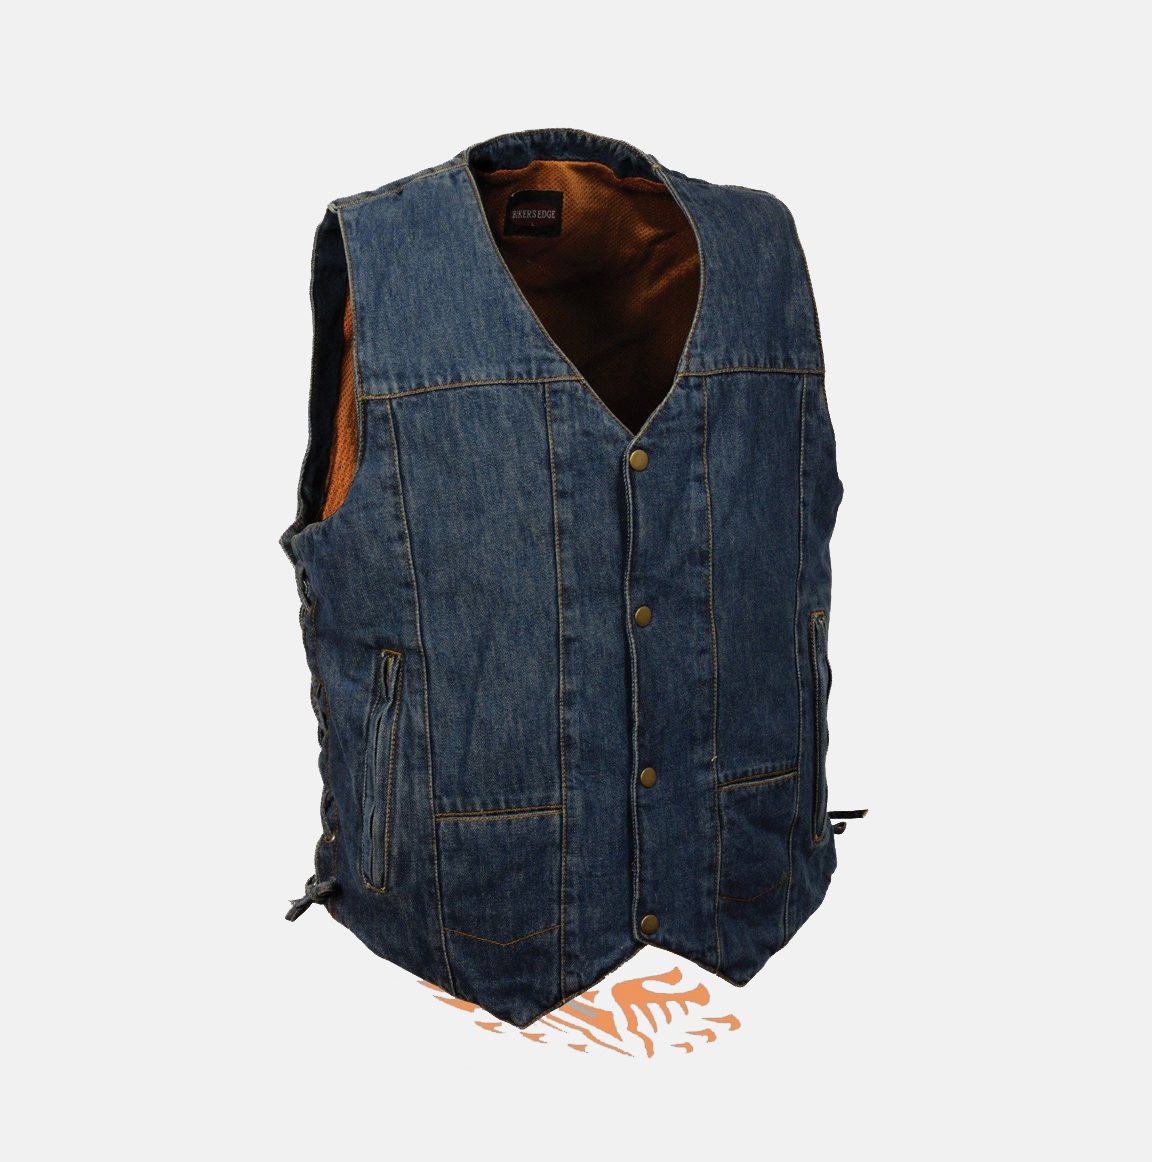 If you are looking for an alternative look, or if leather just isn't really your speed, Eagle Leather has a great assortment of biker denim vests for men.